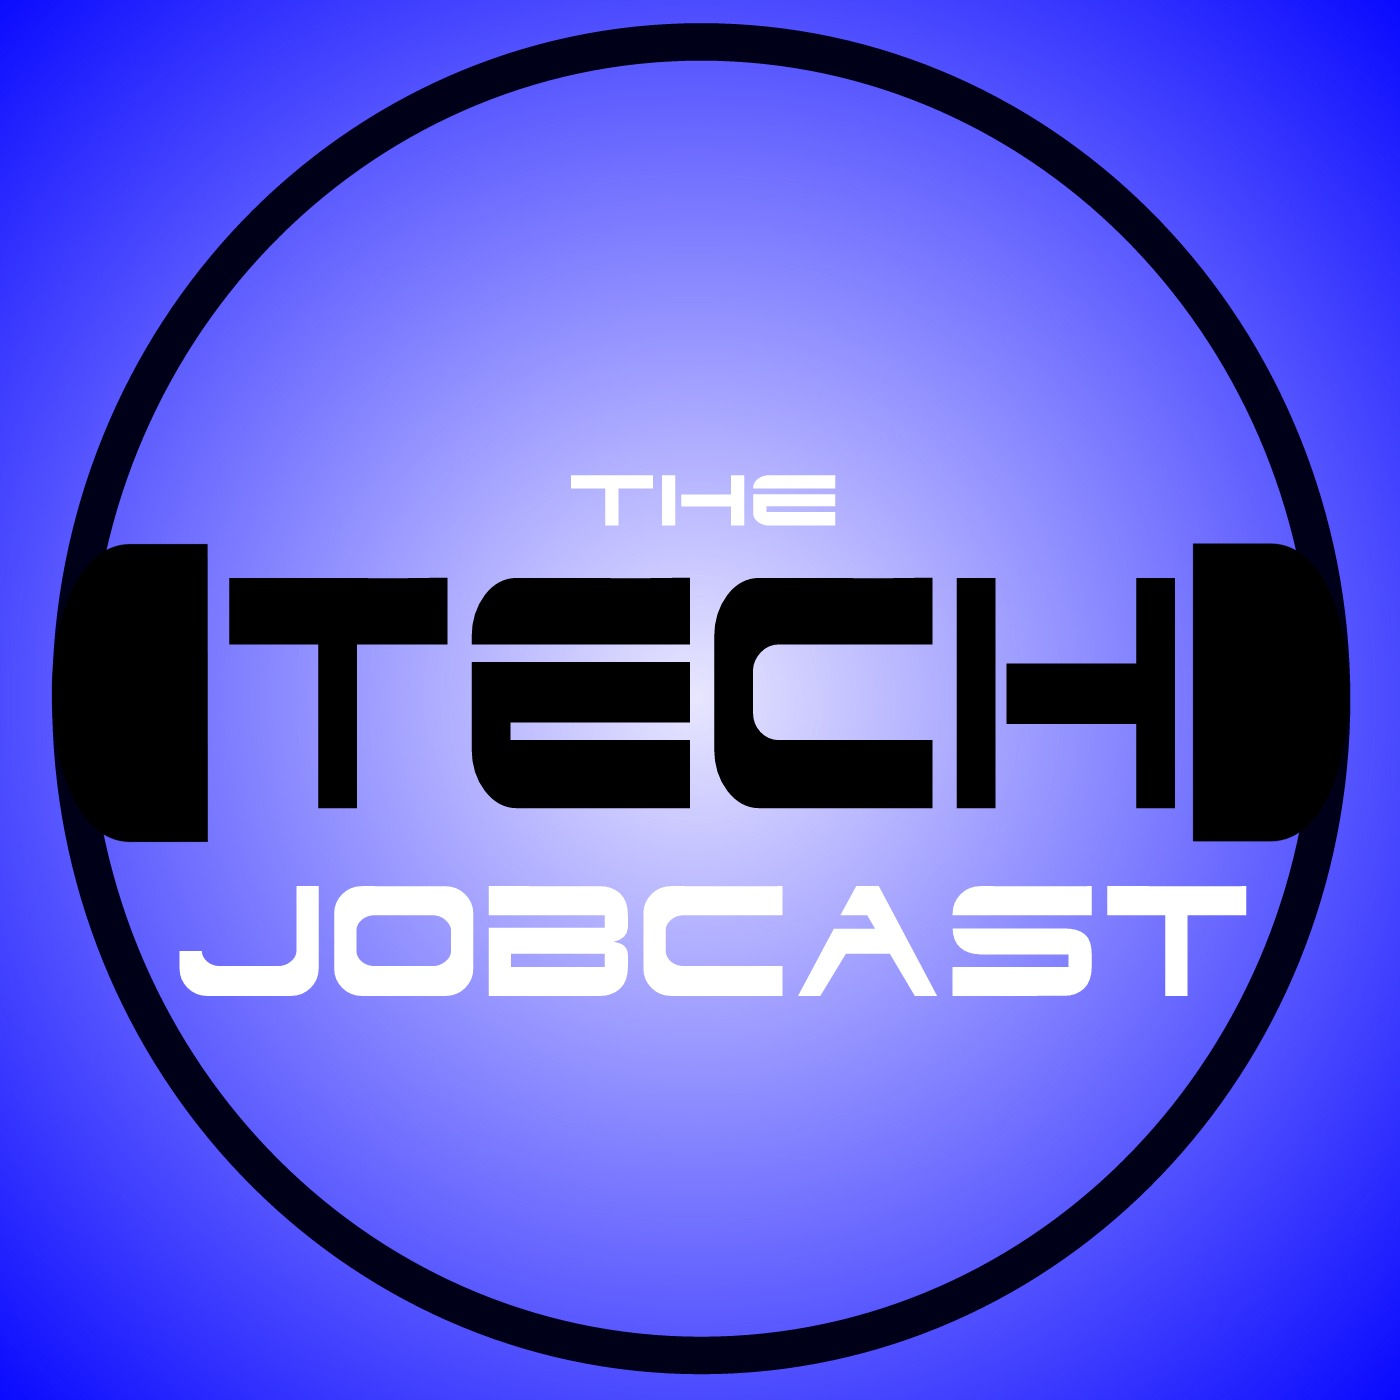 IT Job listings for the week of July 16, 2017